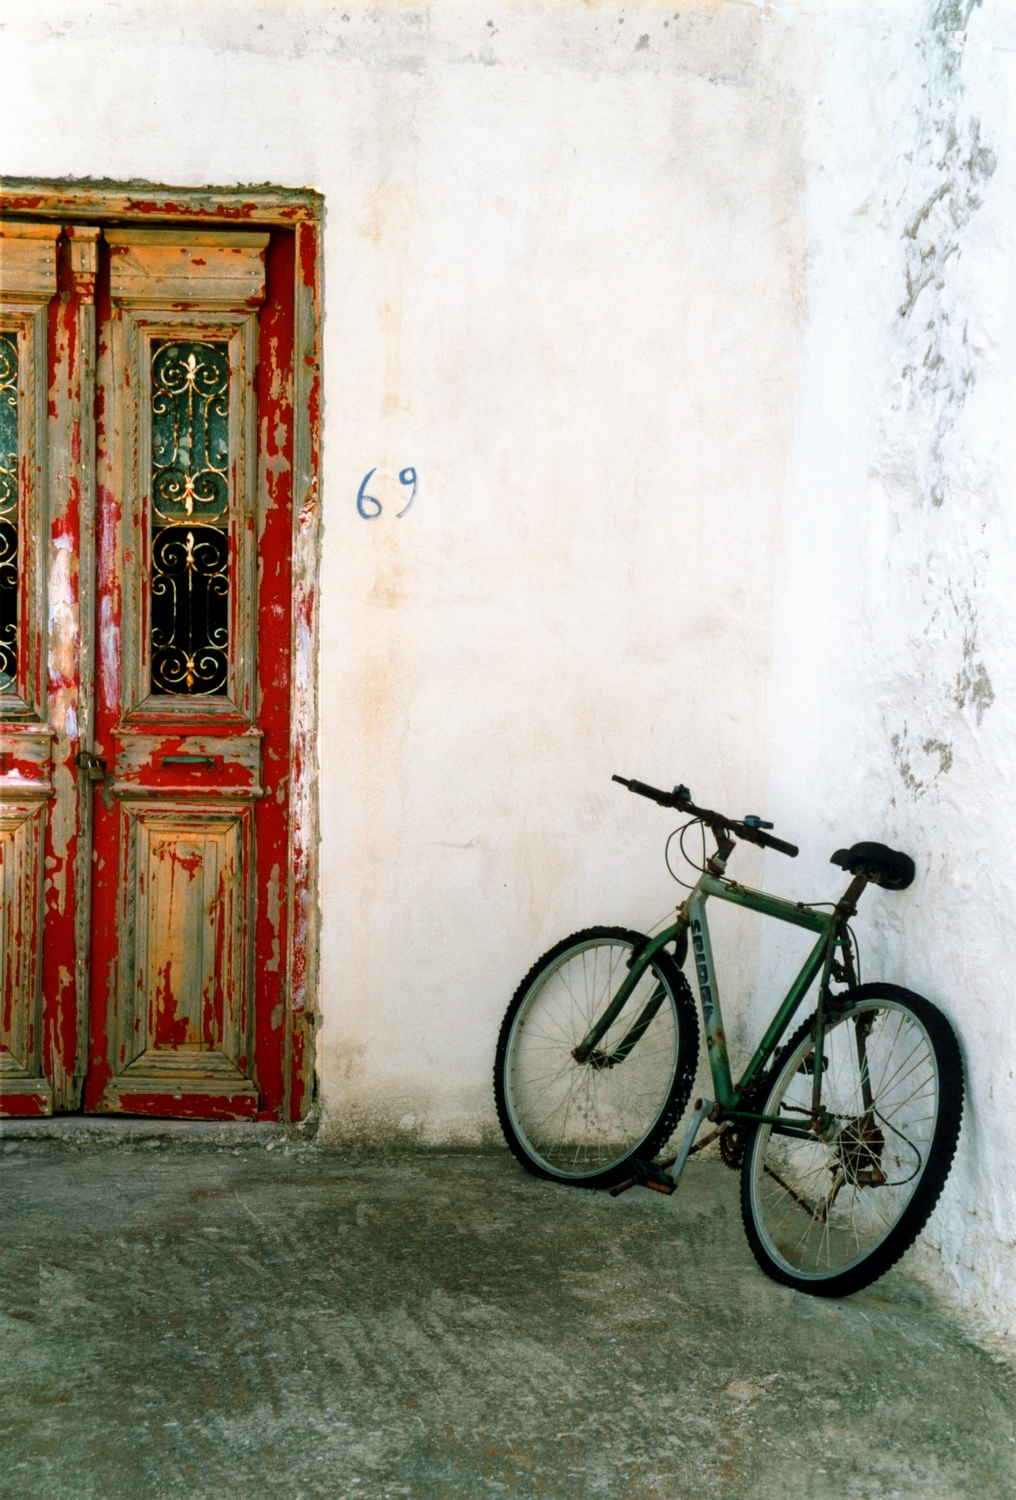 Facade and bike